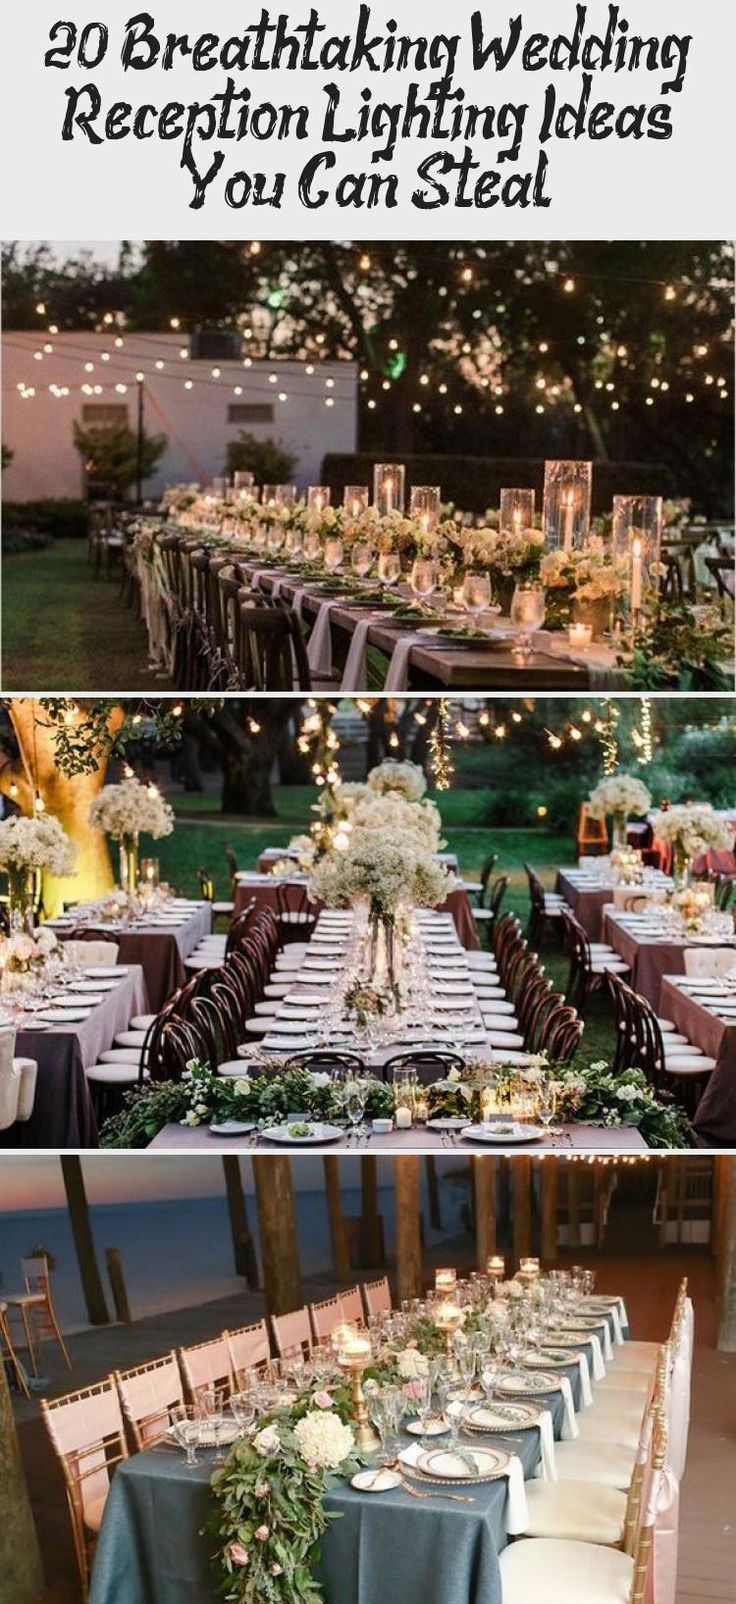 forest wedding reception ideas with lights #weddings #countrywedding#weddingideas #wedding #rosesandrings #rusticweddings #gardenweddingSuit #gardenweddingPhotography #Casualgardenwedding #Smallgardenwedding #gardenweddingStage